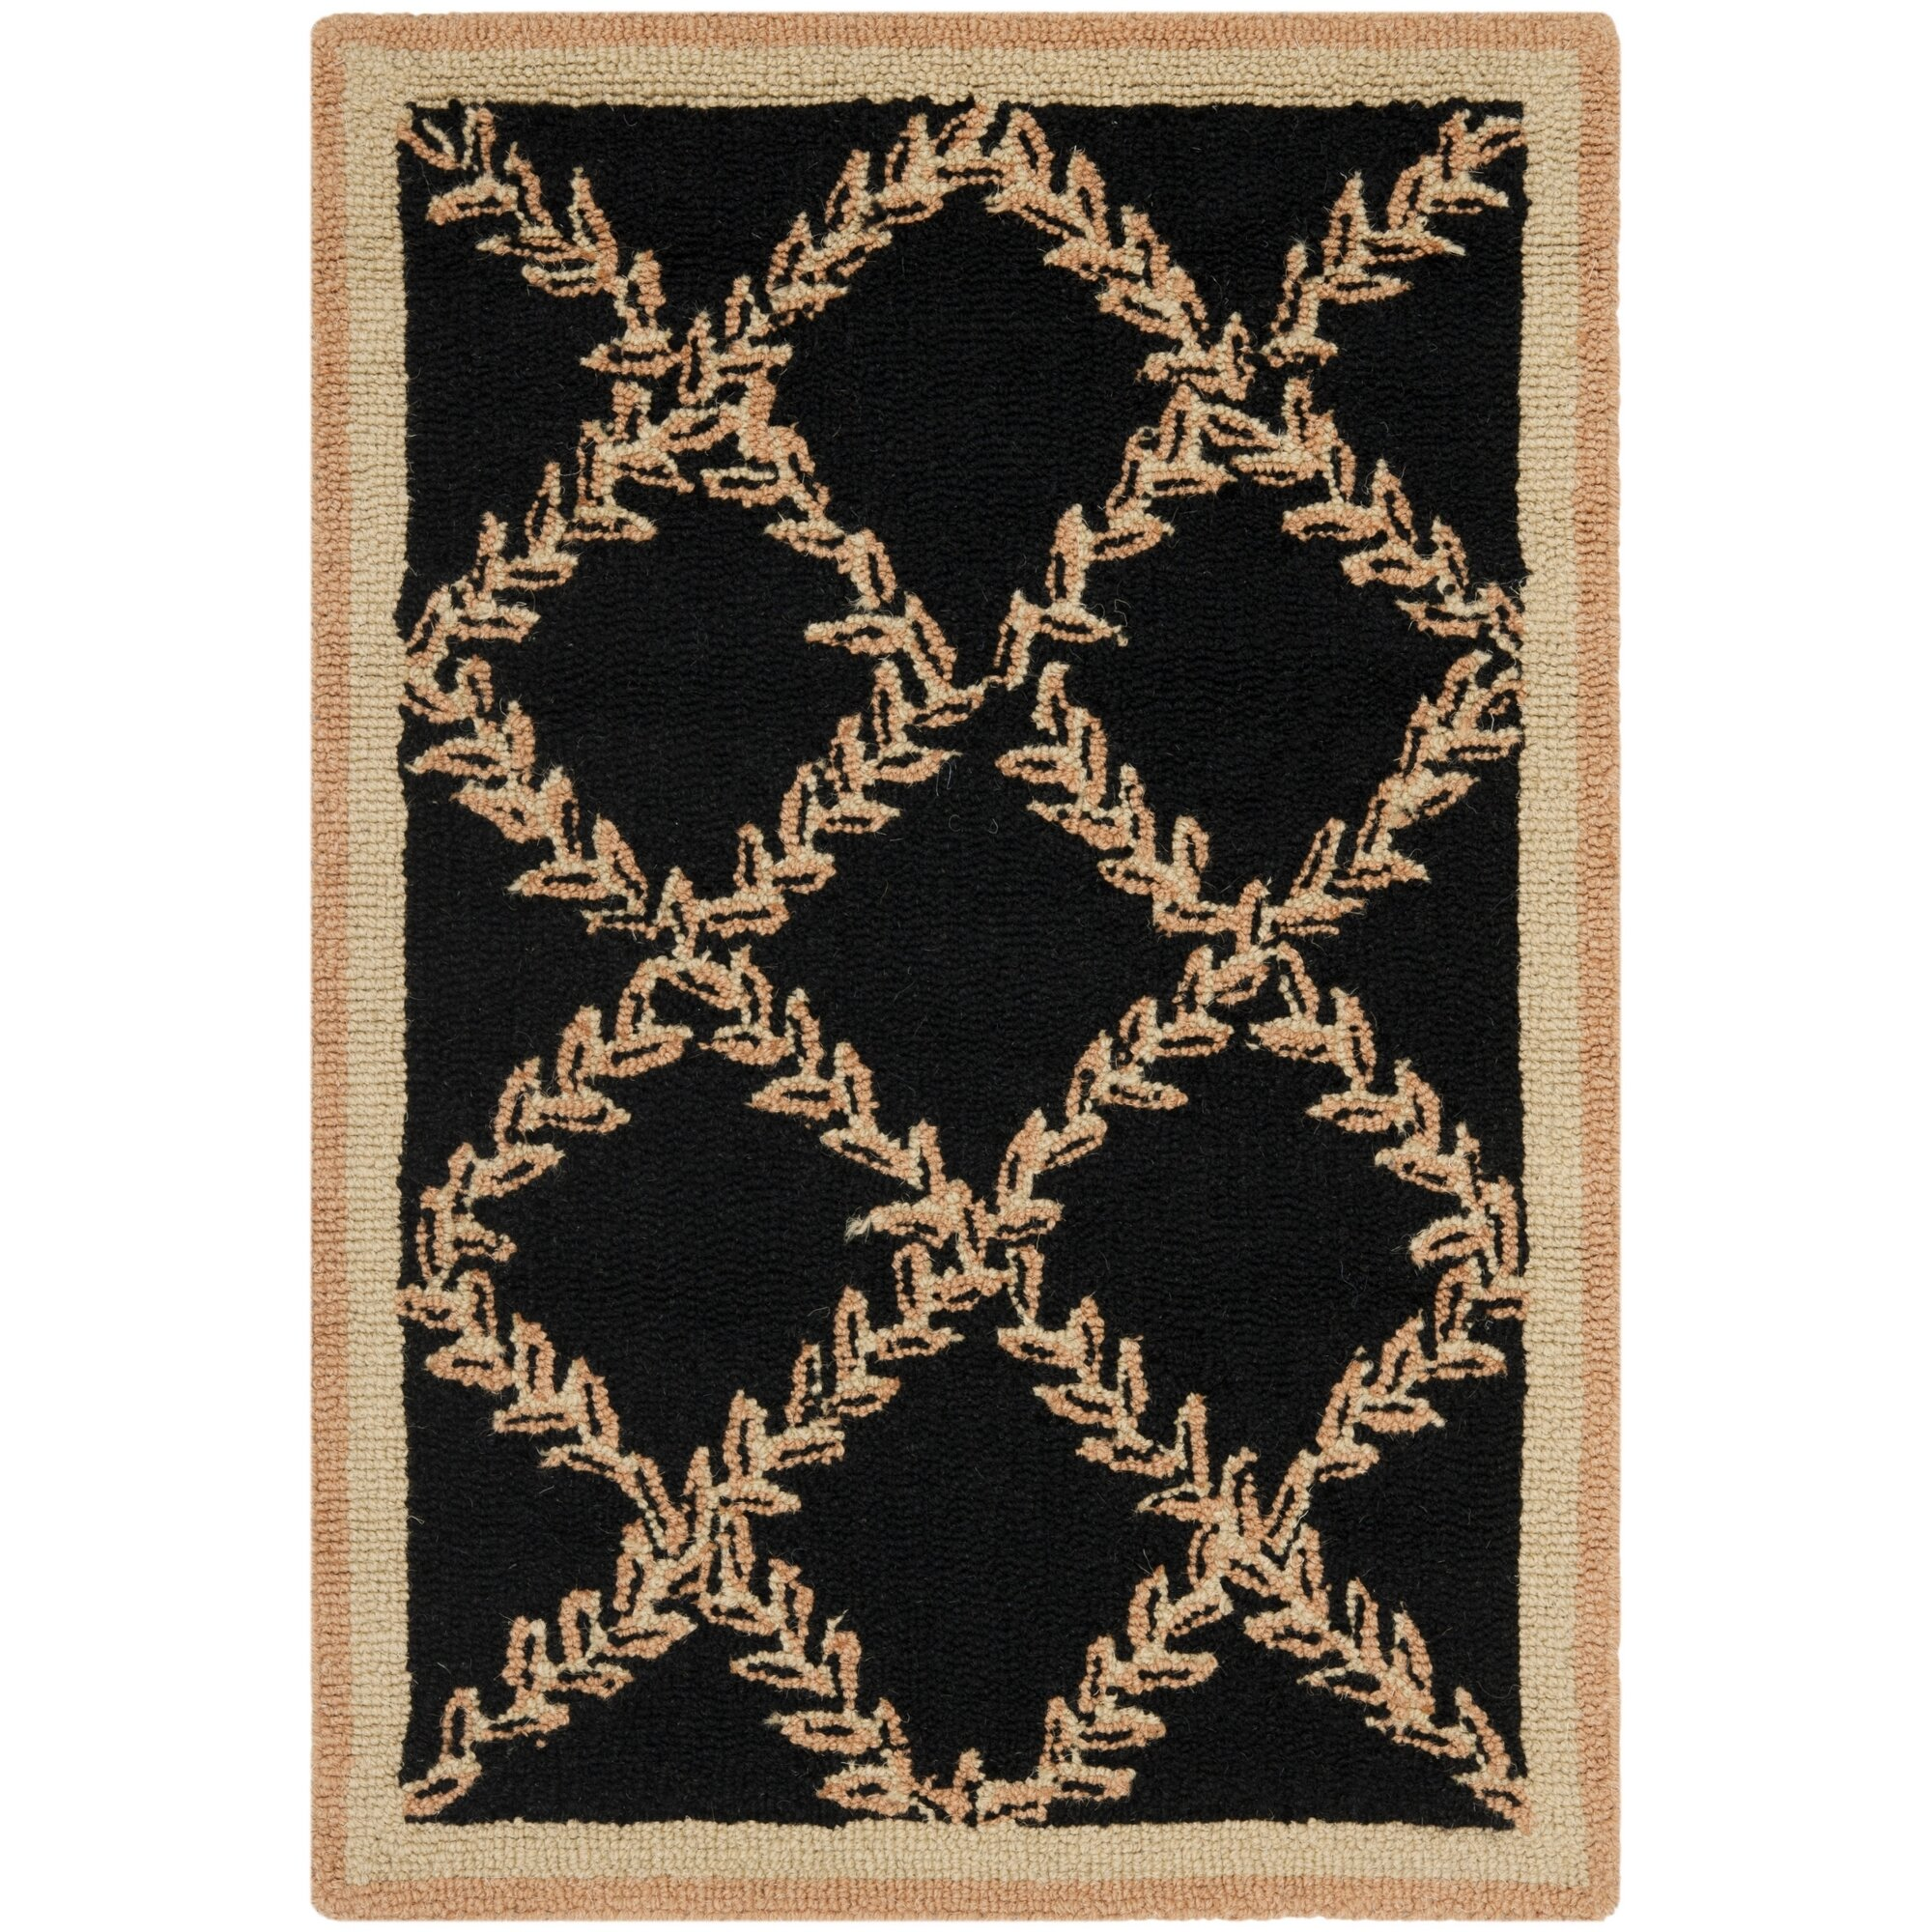 Gold And Black Rug Home Decor